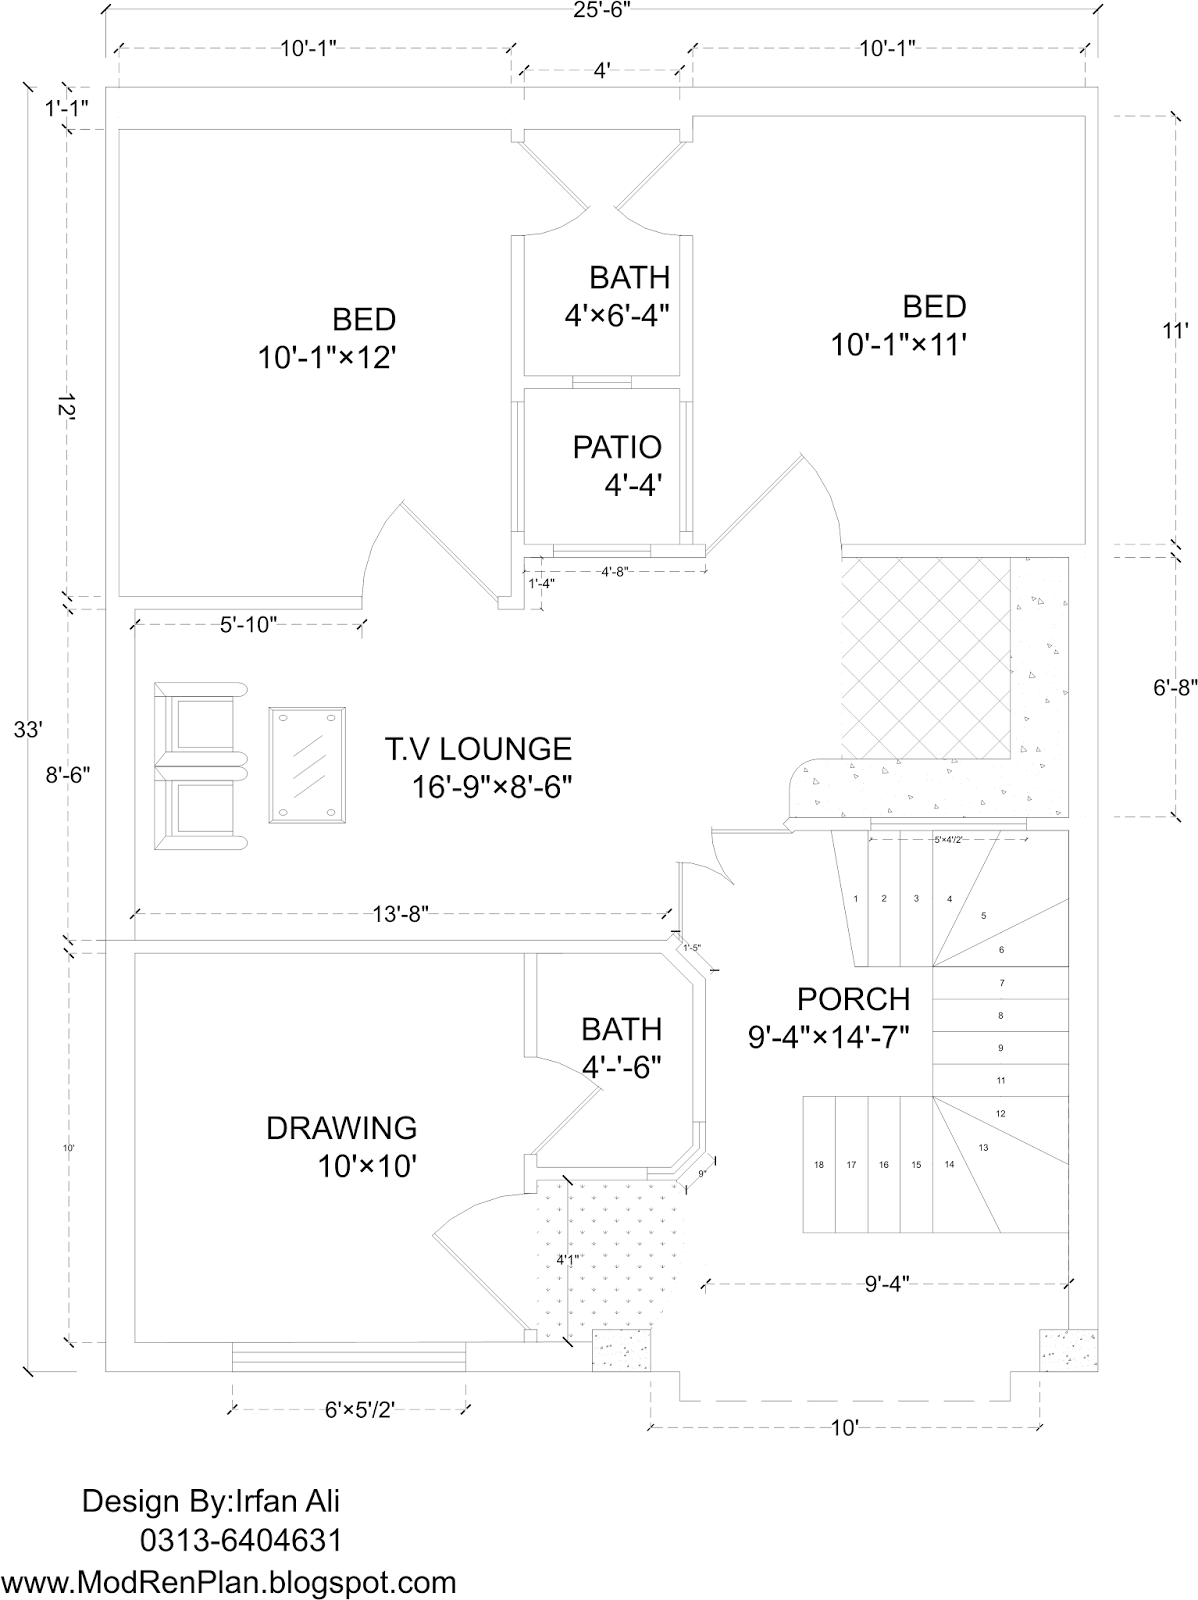 5 Marla House Plan And Map With Detail 25x33 House Plan With